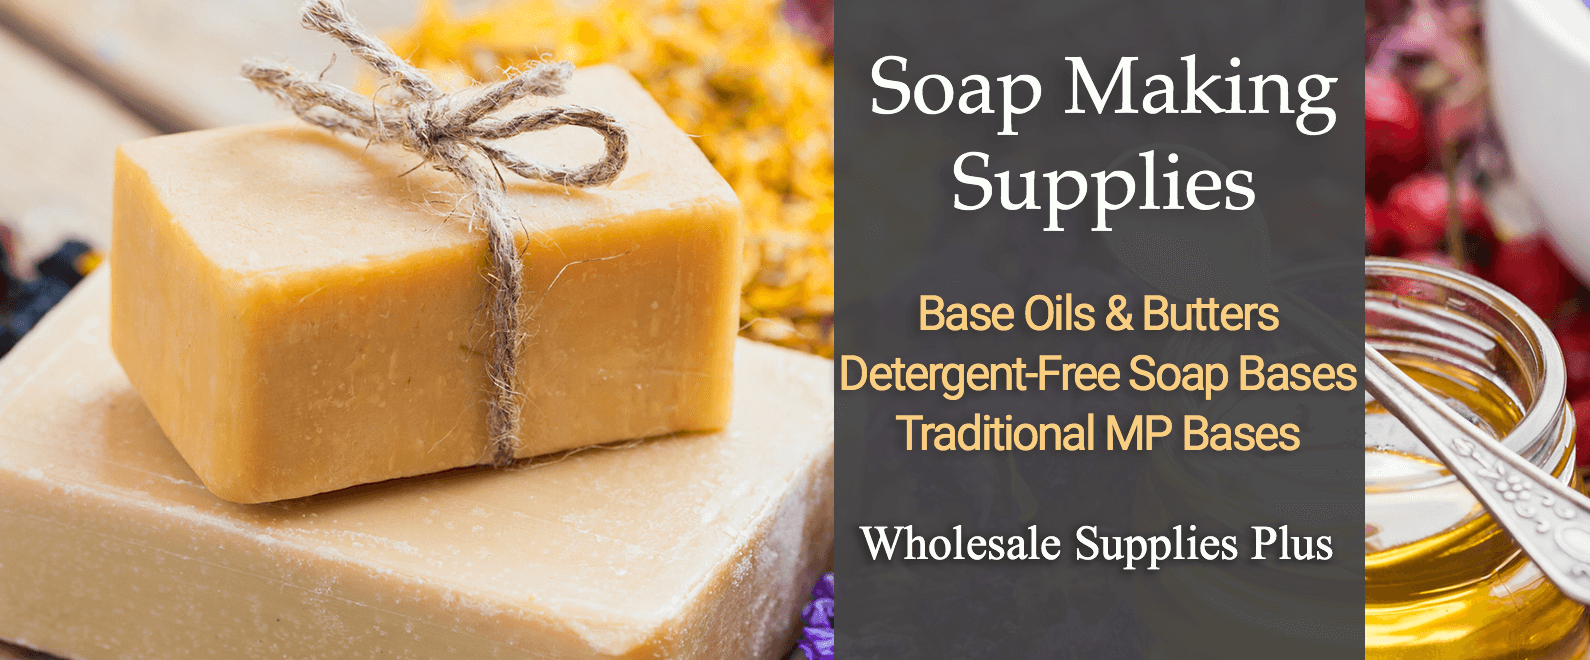 Soap Making Supplies - Wholesale